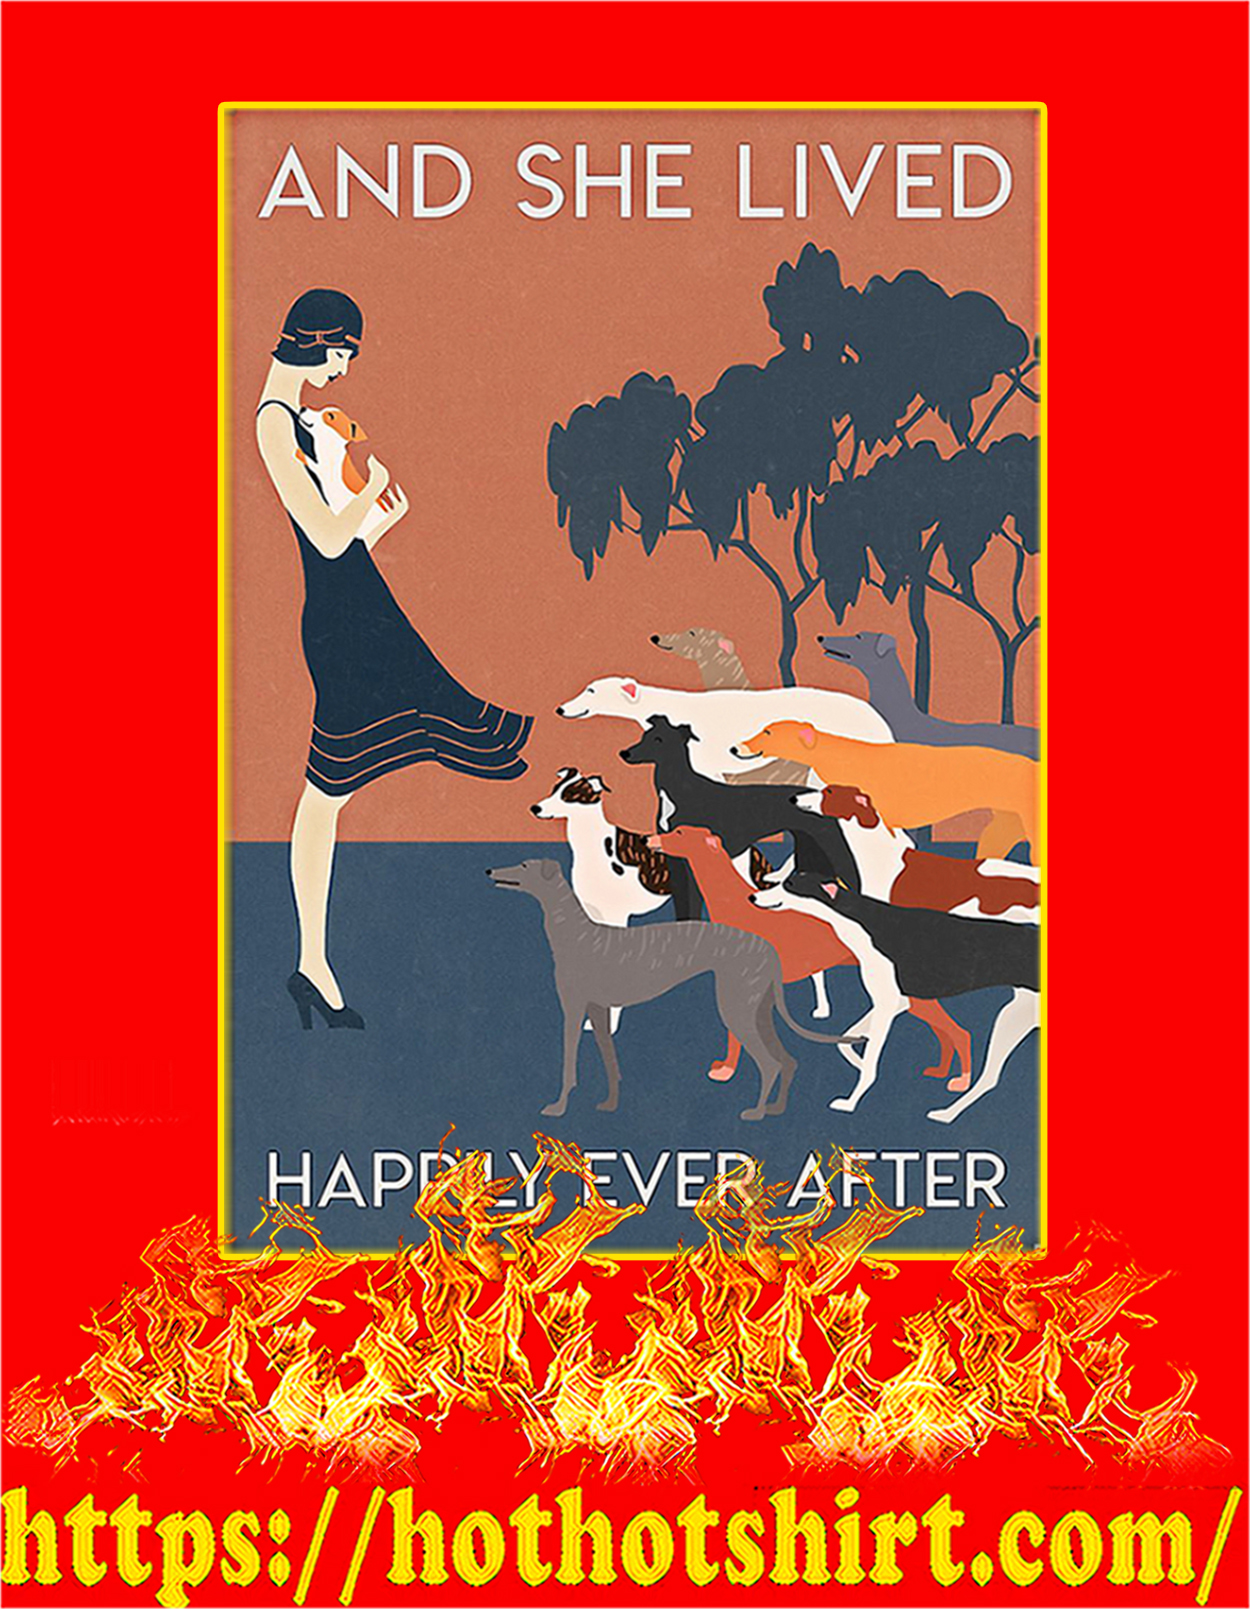 Greyhound And she lived happily ever after poster - A3